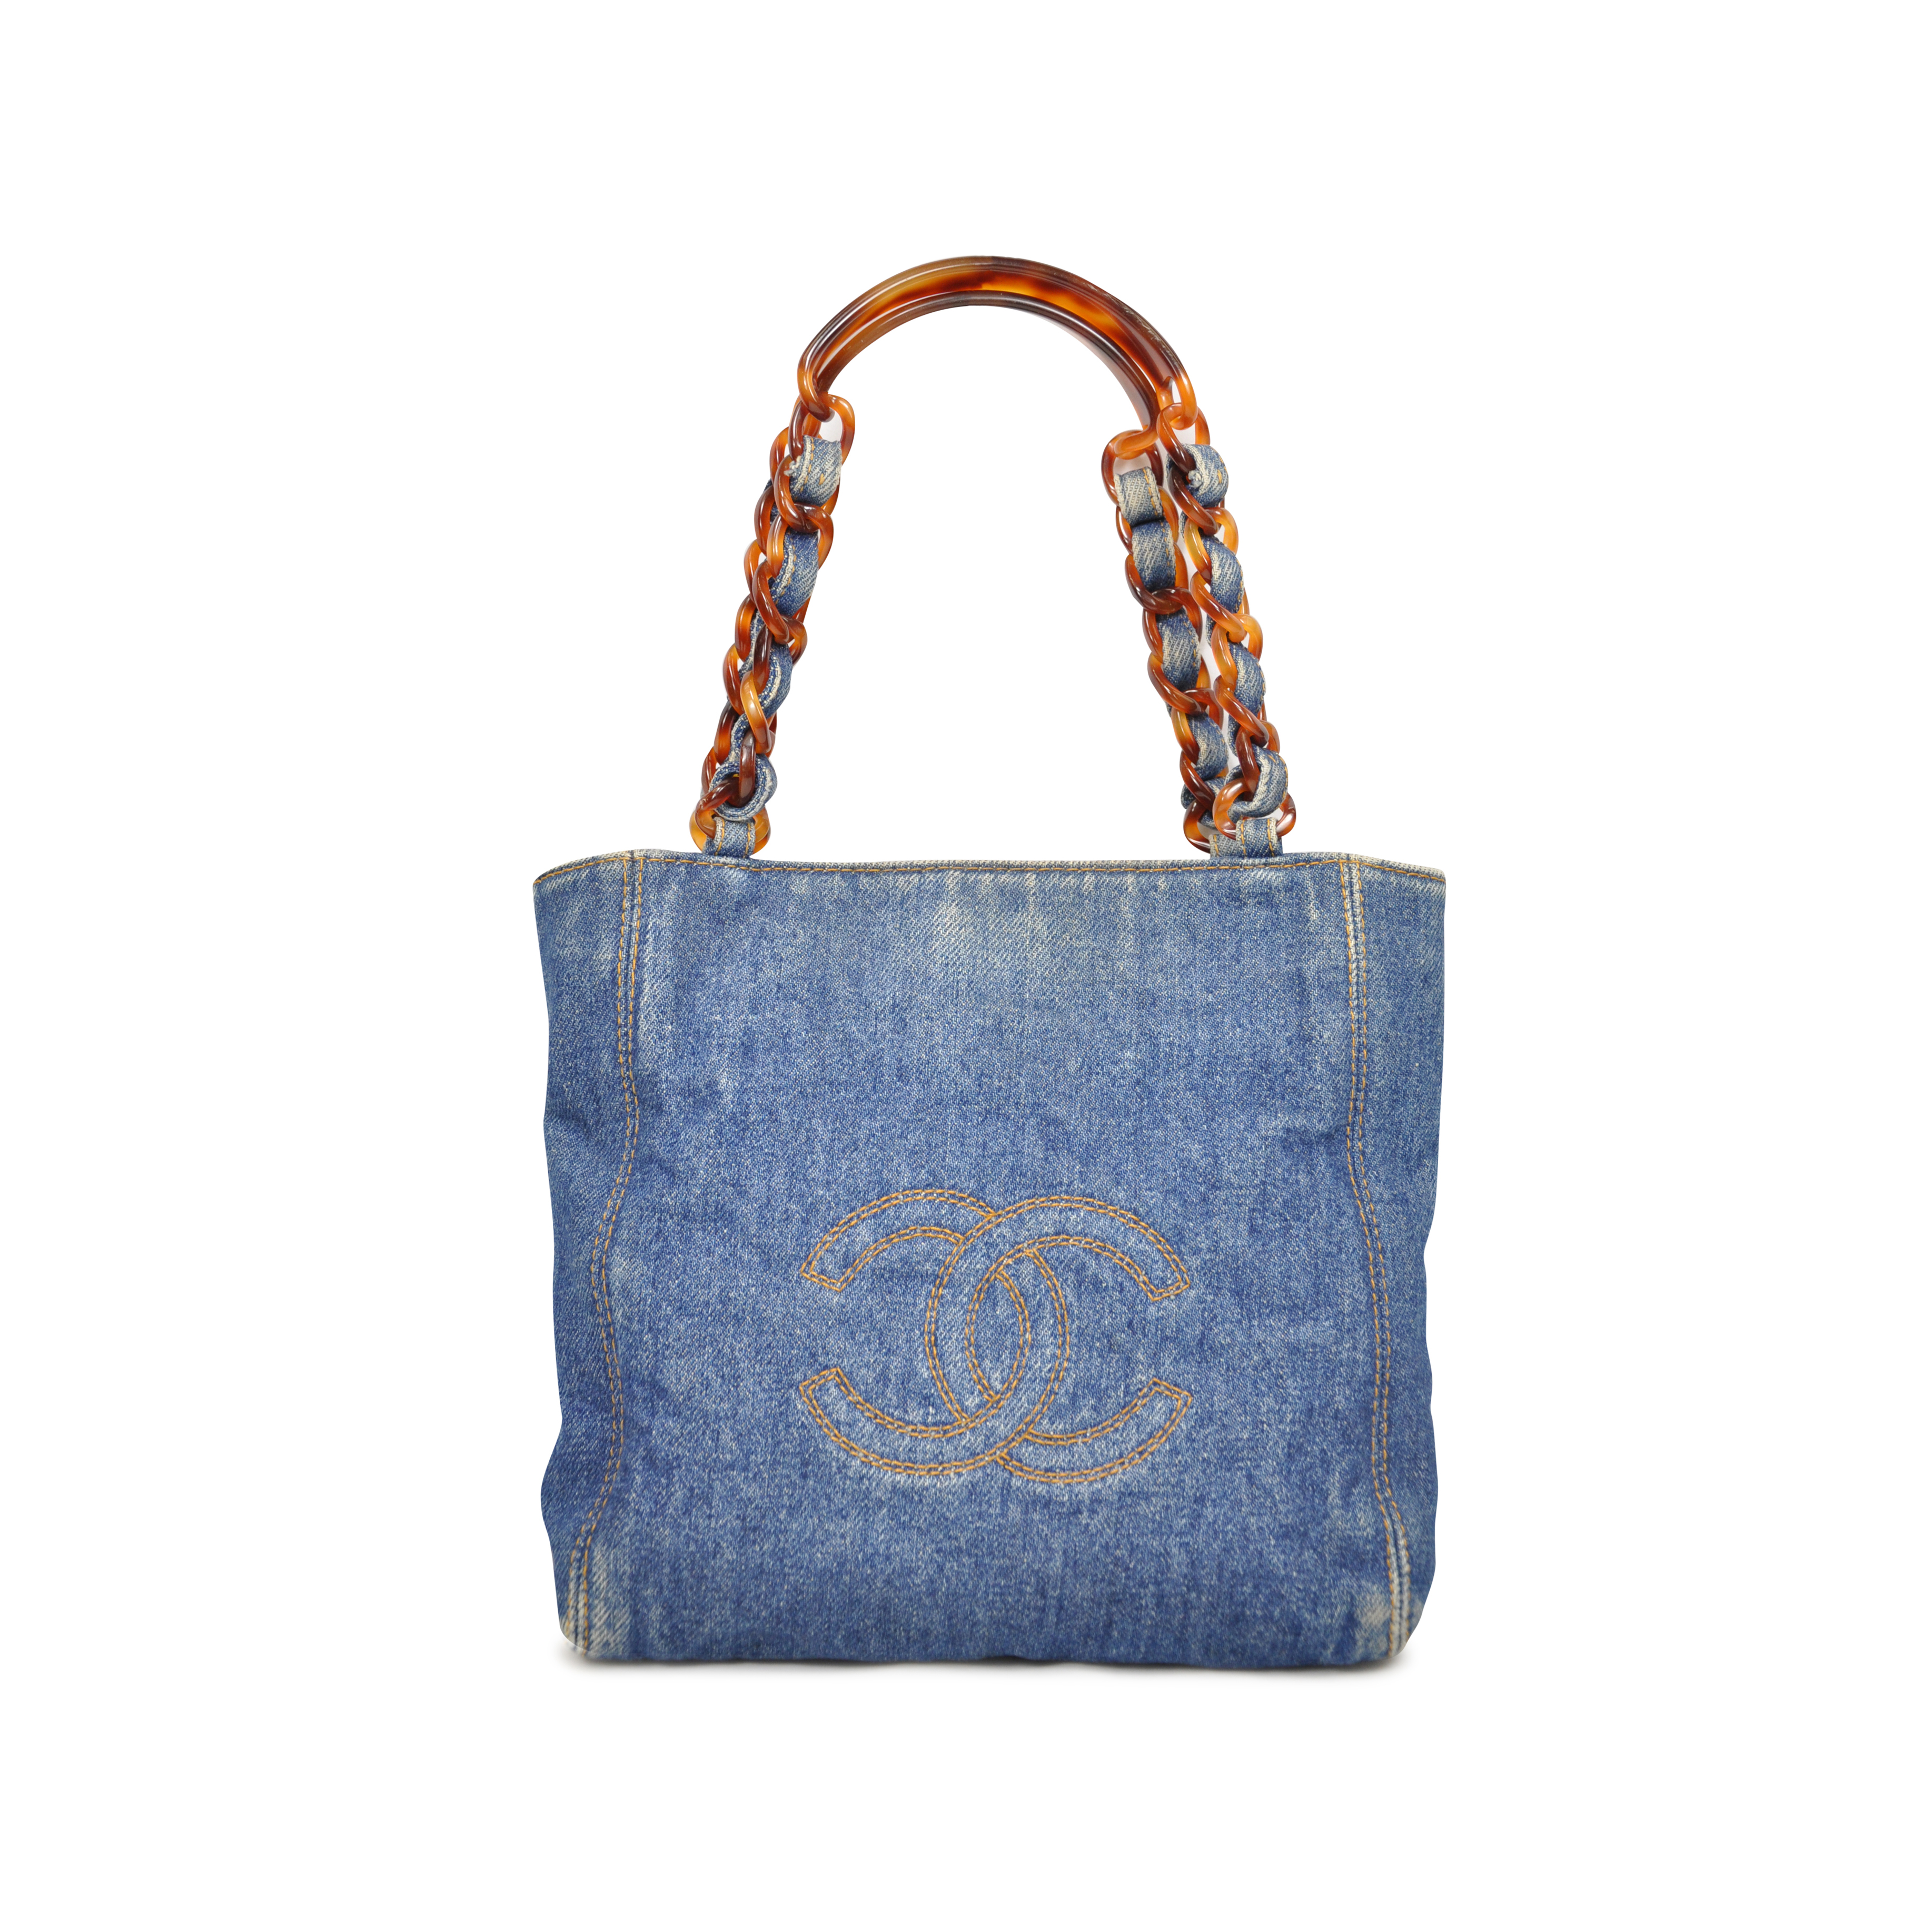 93321497408b Authentic Second Hand Chanel Denim and Tortoiseshell Handle Bag  (PSS-094-00009) | THE FIFTH COLLECTION